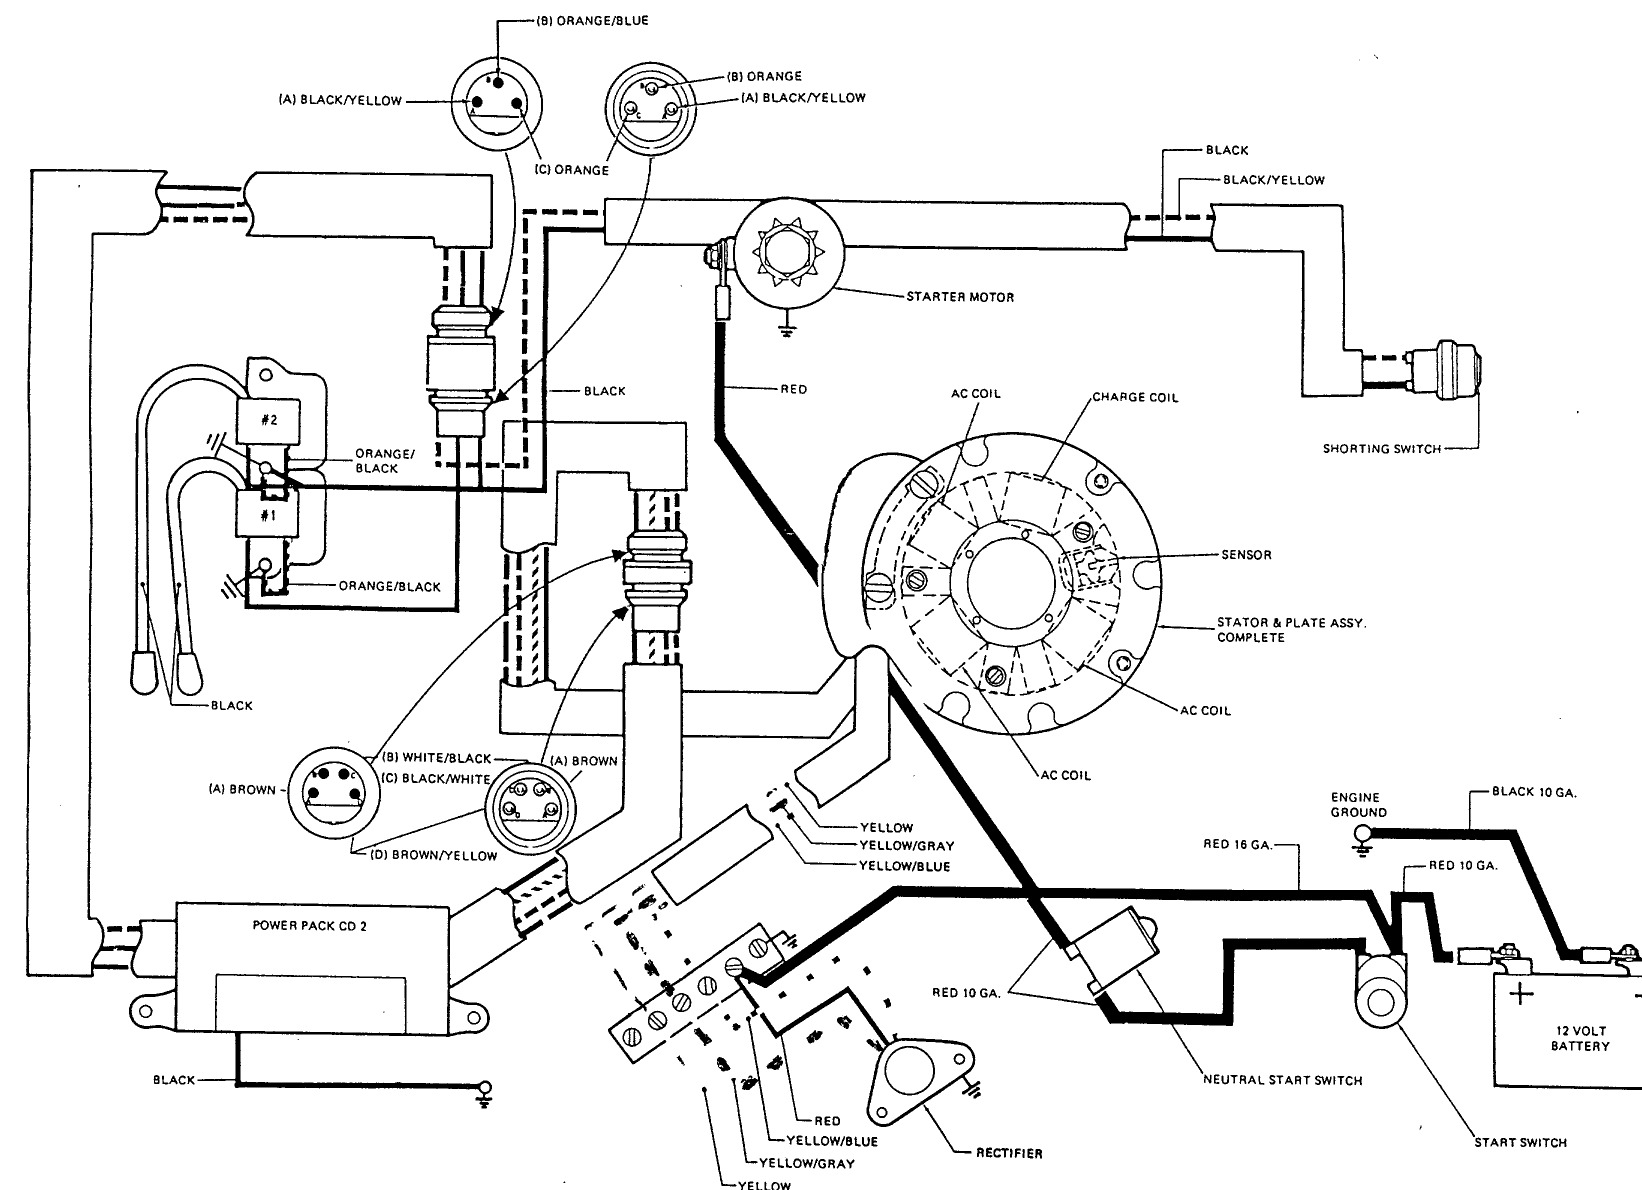 Evinrude Key Switch Wiring Diagram from www.leeroysramblings.com